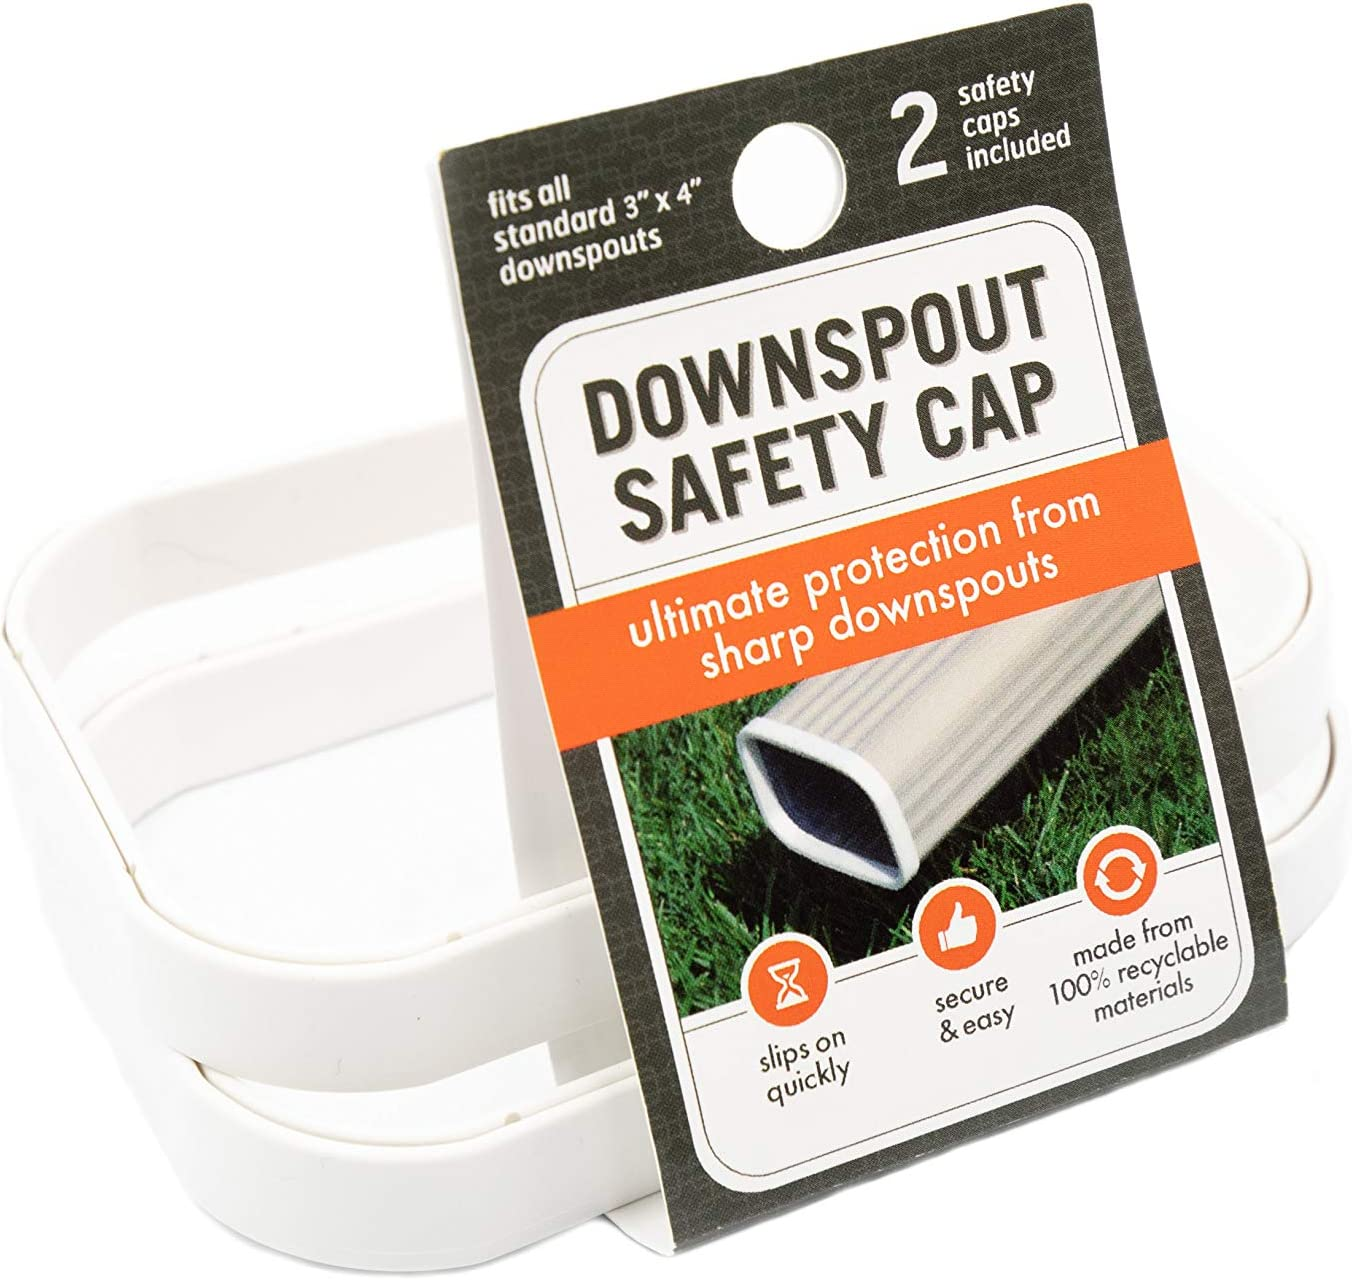 Downspout Topics on TV Safety Cap Gutter Super Special SALE held K Adults Protection for